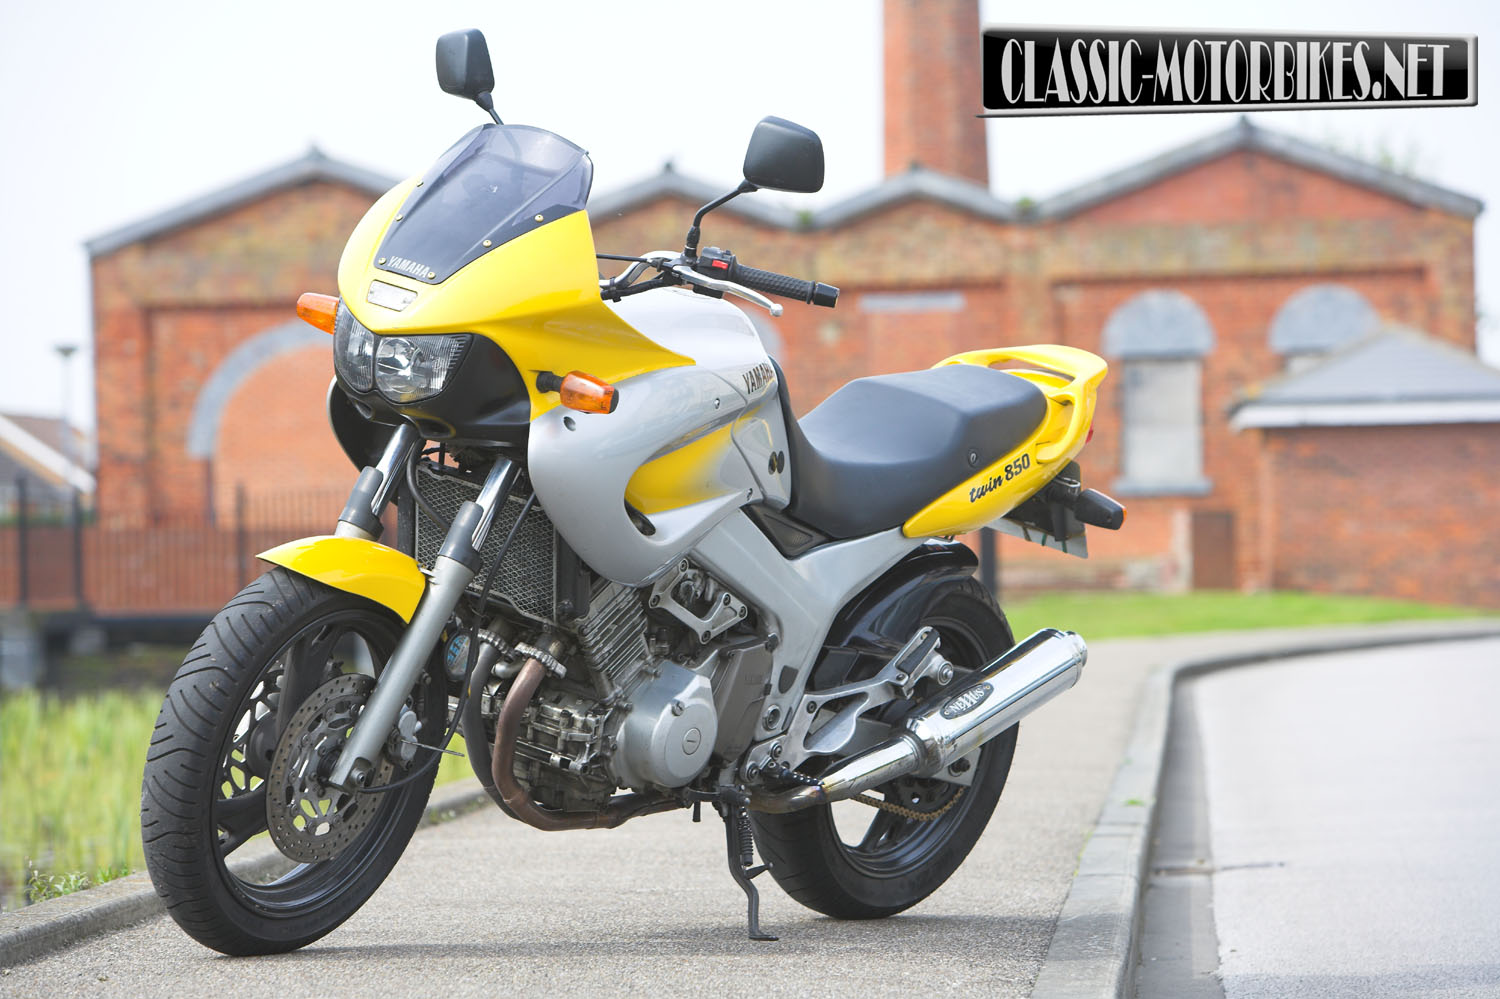 yamaha tdm850 the great all rounder classic motorbikes. Black Bedroom Furniture Sets. Home Design Ideas